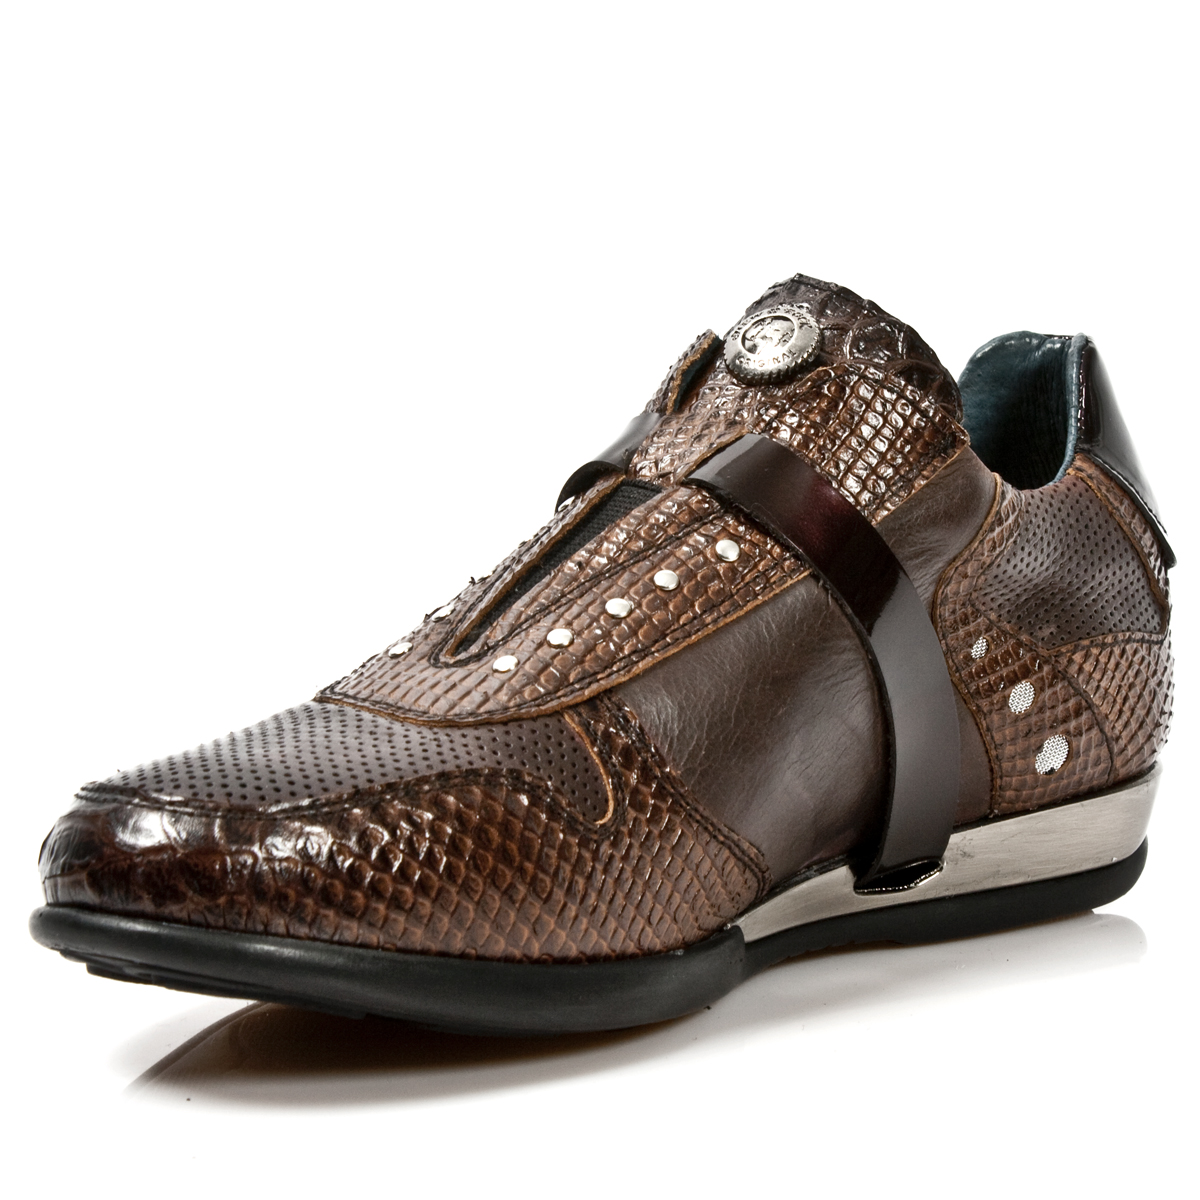 brown leather serpentia hybrid dress shoes may take up to 45 50